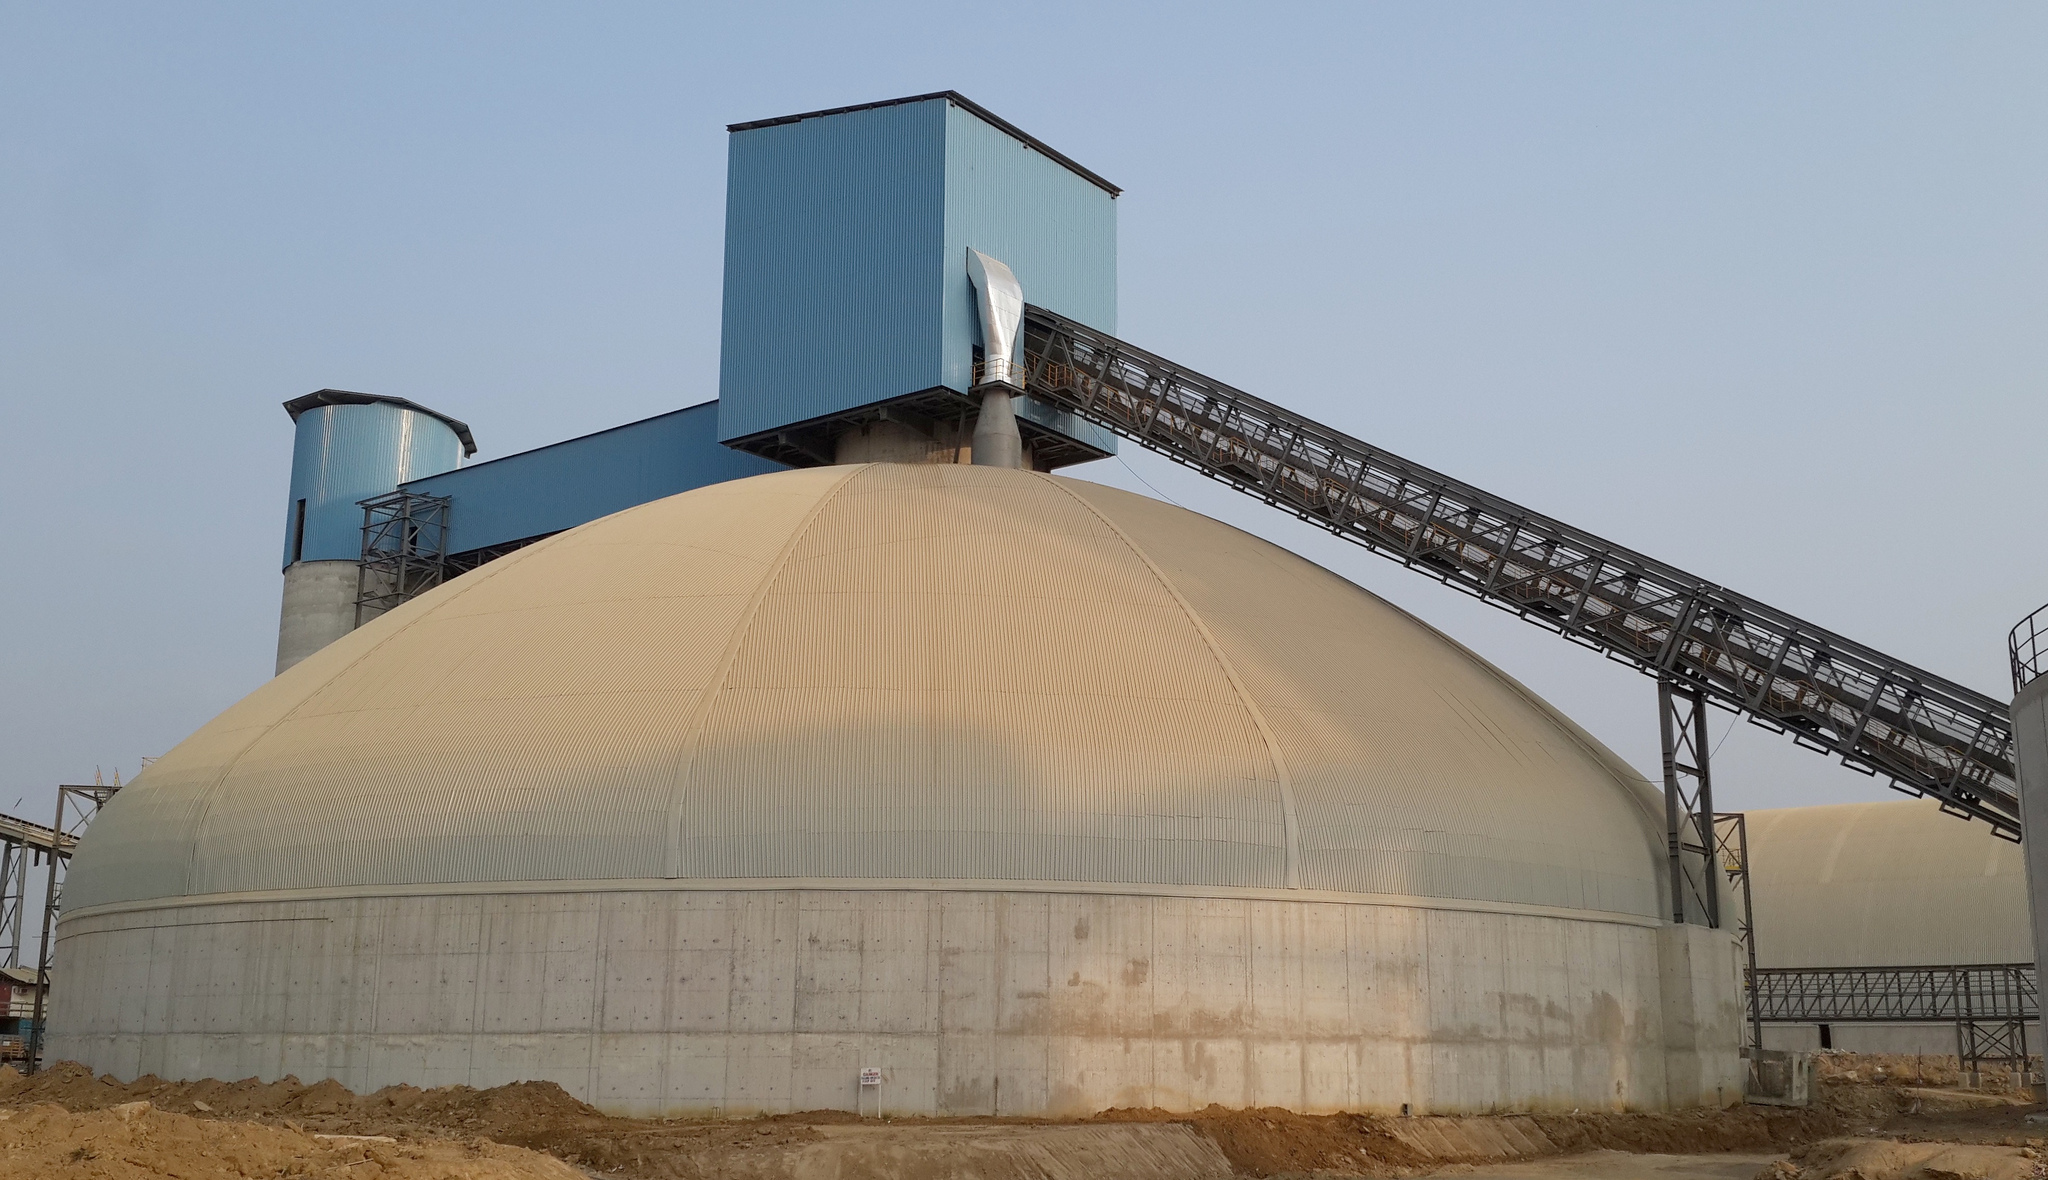 Clinker storage dome for Edo Cement in Nigeria.